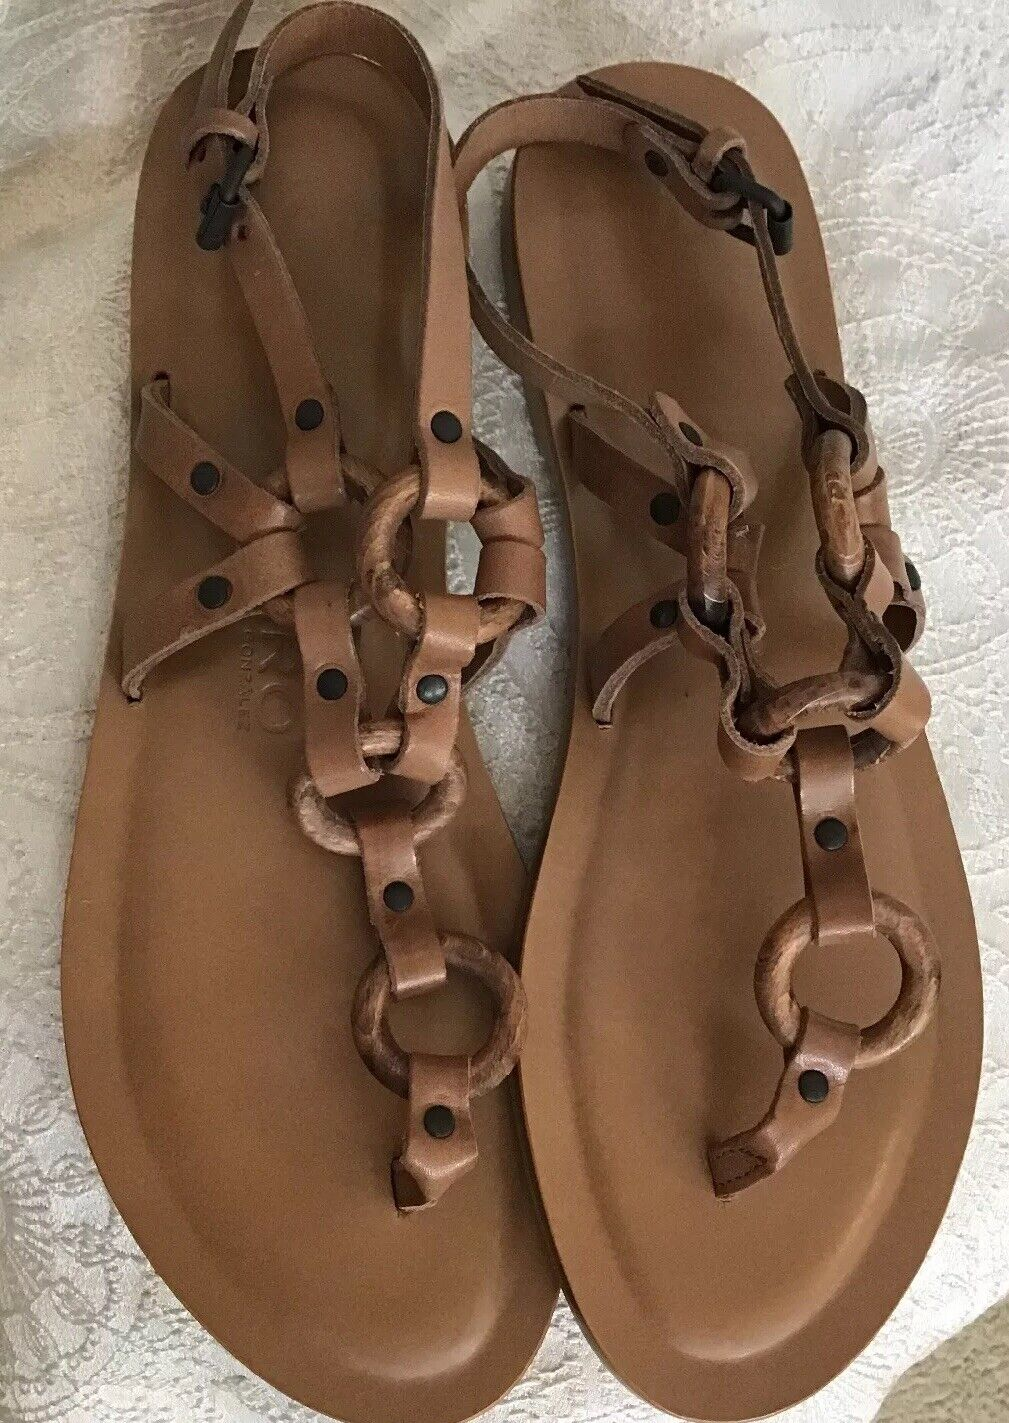 Alvaro Gonzalez Ando Sandal Brown Leather Circle The Rapped  Leather Size 40 New